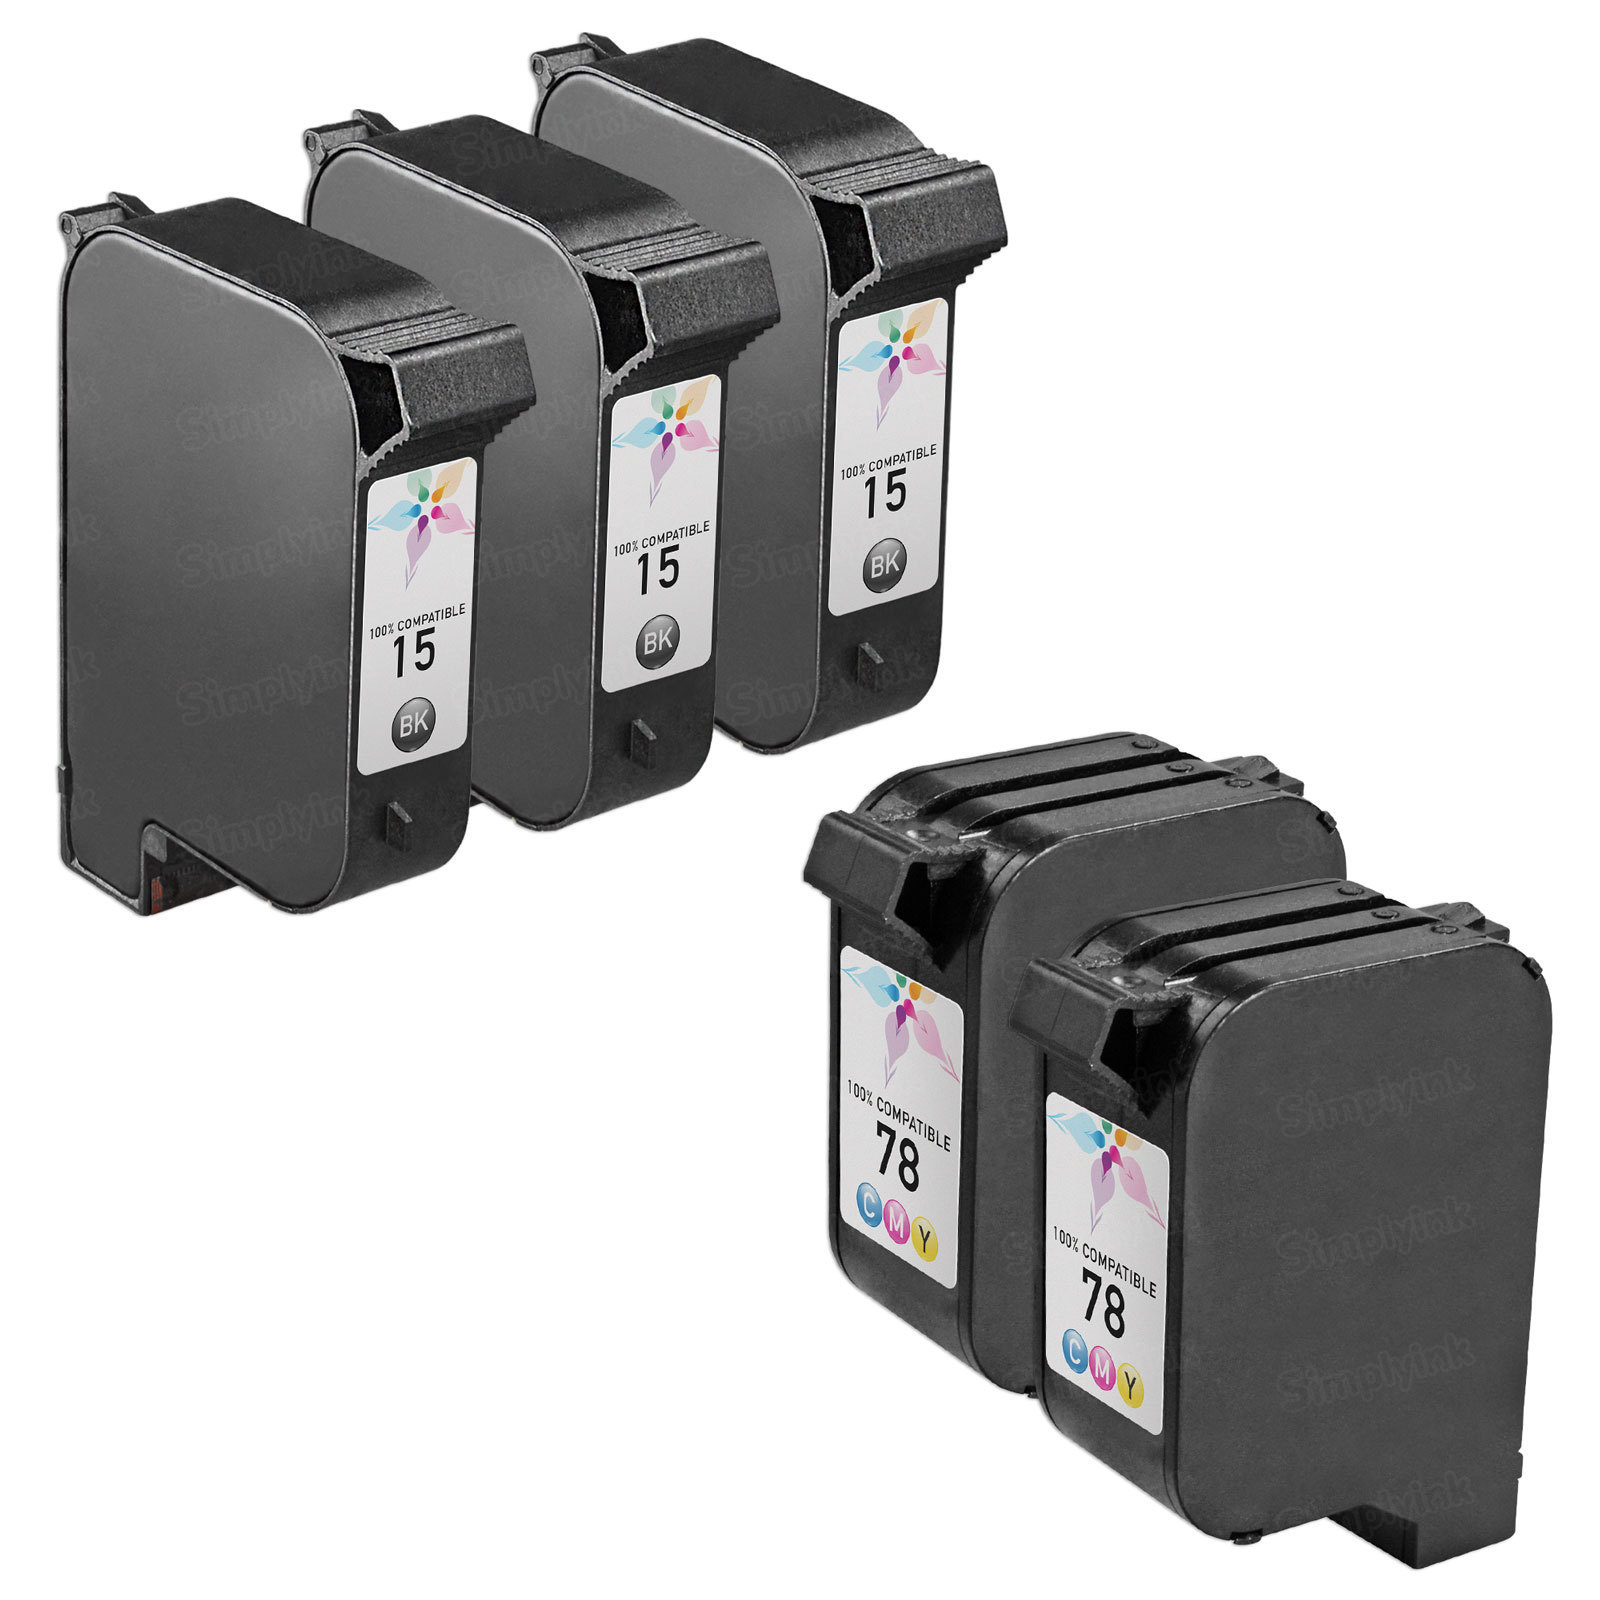 Remanufactured Bulk Set of 5 Ink Cartridges to Replace HP 15 & HP 78 (3 BK, 2 CLR)